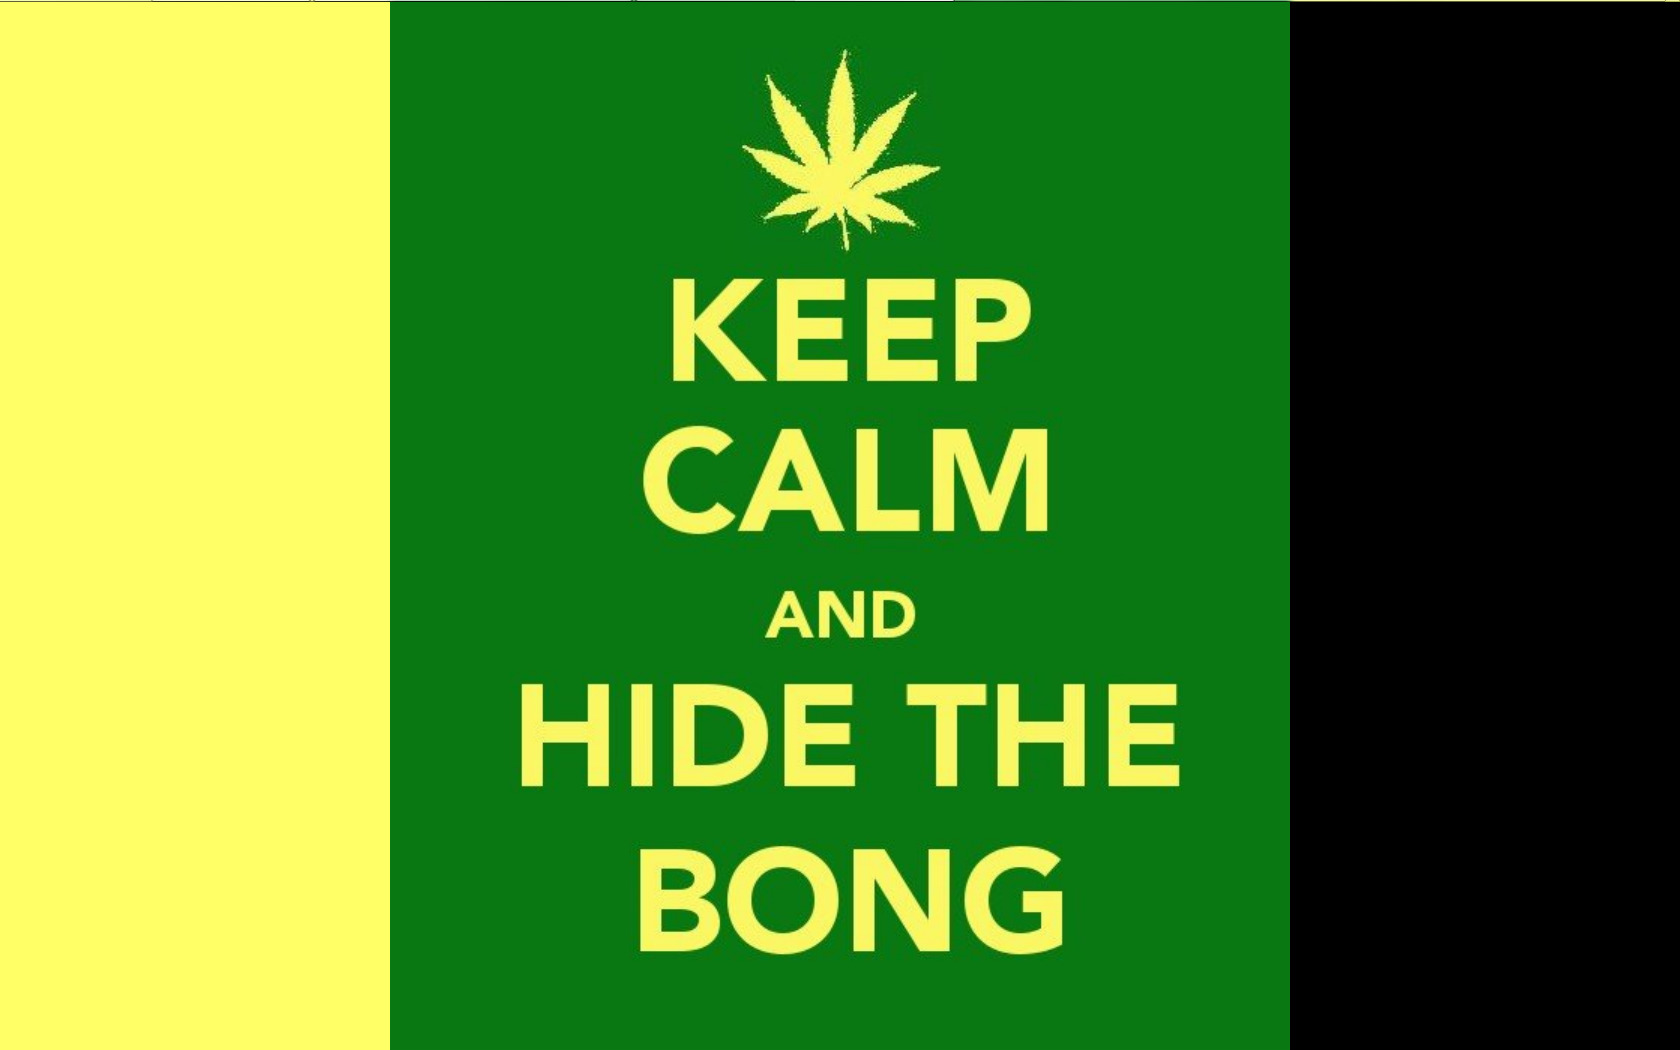 keep calm and bong HD Wallpaper